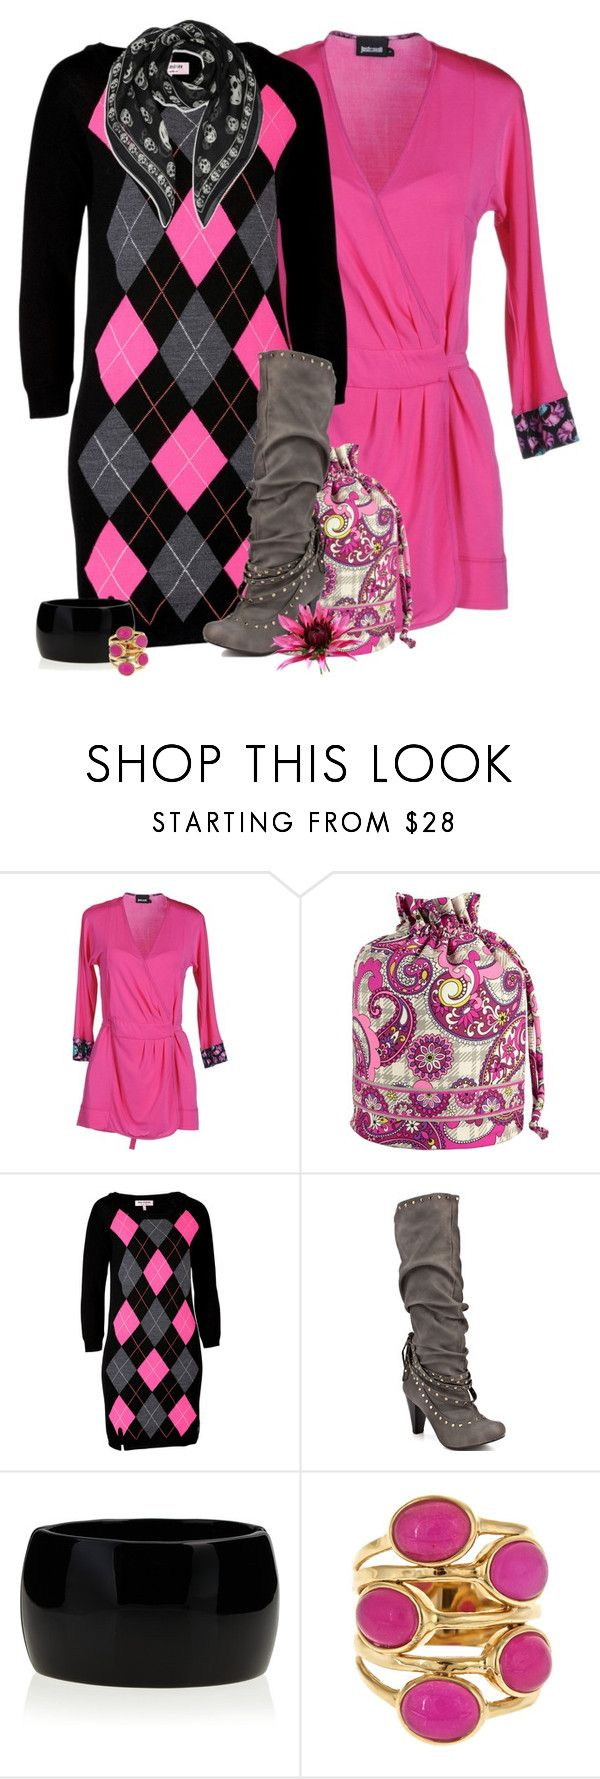 """""""Style These Boots"""" by tacciani ❤ liked on Polyvore featuring Just Cavalli, Vera Bradley, Juicy Couture, Not Rated, Kenneth Jay Lane, Isharya and Alexander McQueen"""